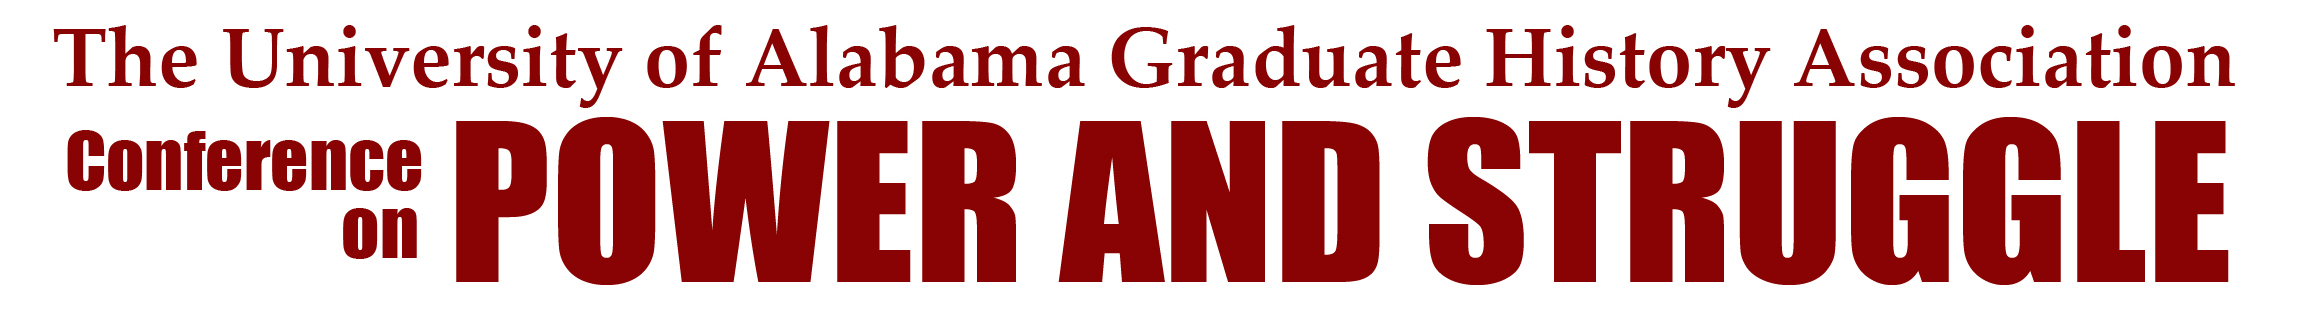 Text graphic that says The University of Alabama Graduate History Association Conference on Power and Struggle